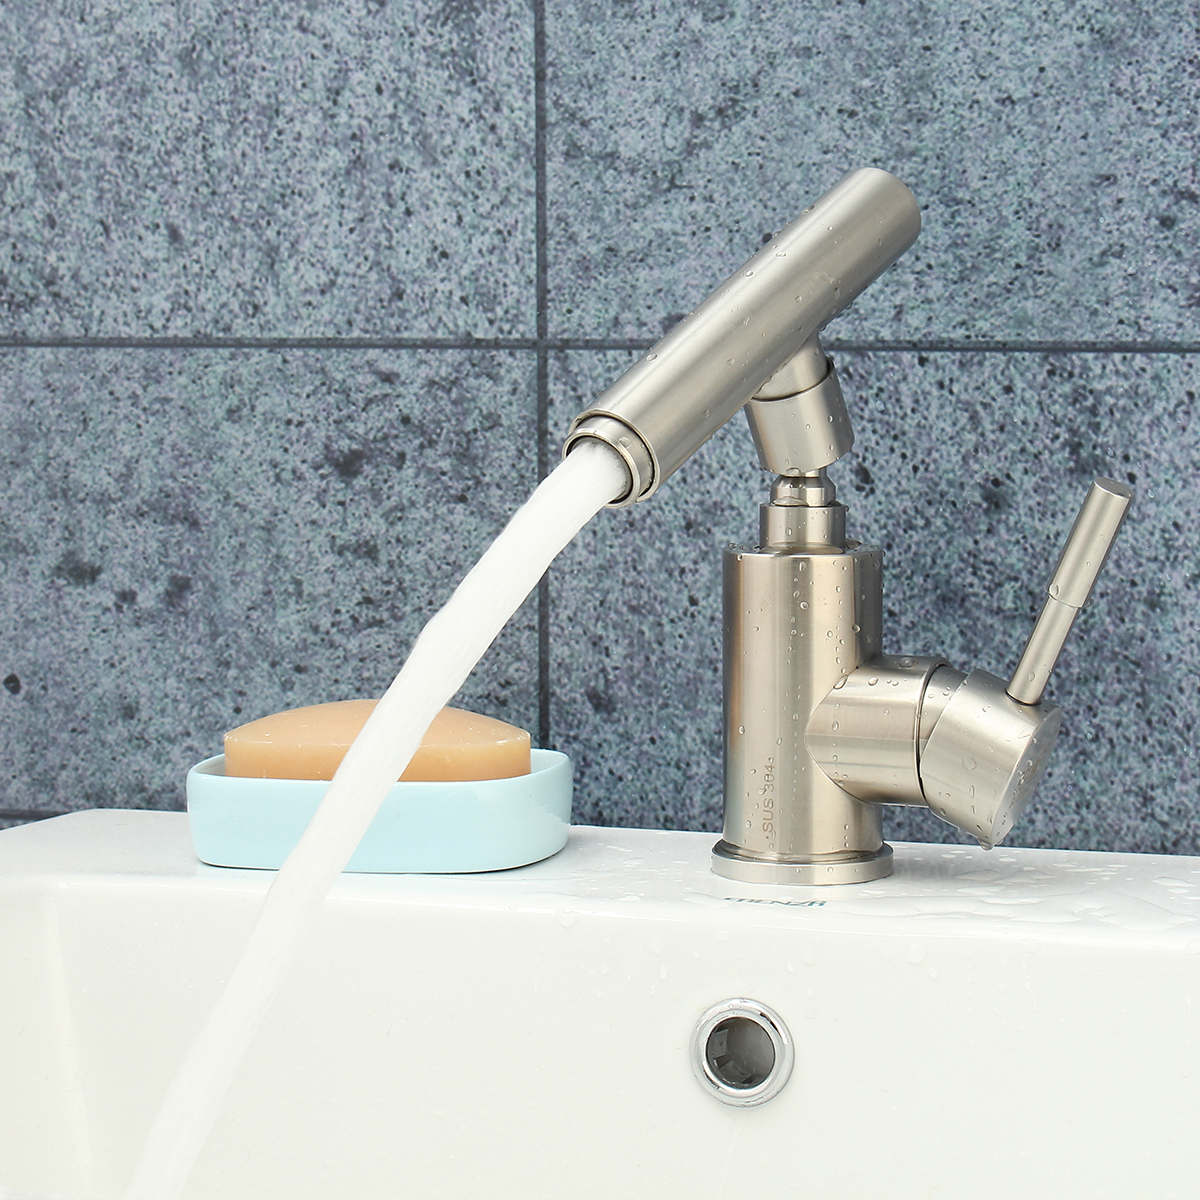 Single Handle Deck Mounted Hot and Cold Water Tap Faucet Spout Bathroom Basin Bathtub Waterfall Faucet Mixer Tap Water Filter цены